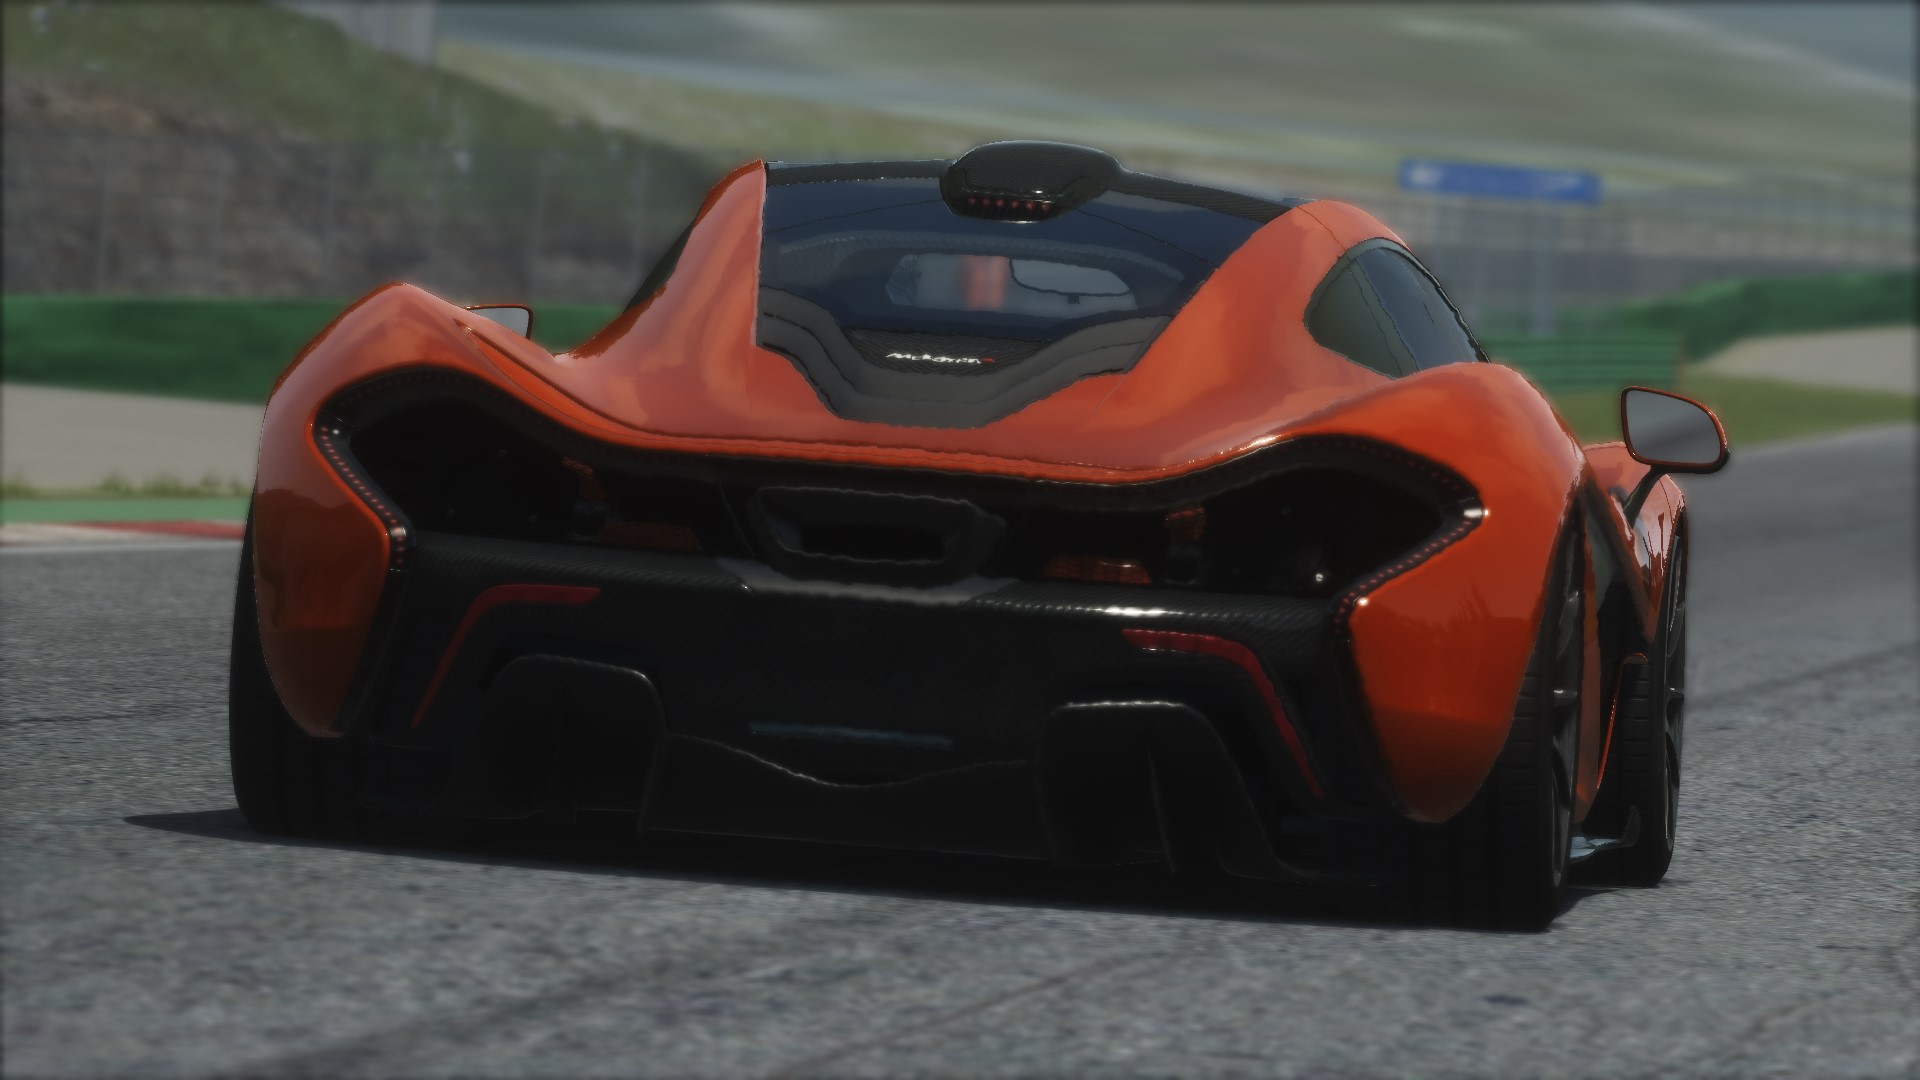 Screenshot_ks_mclaren_p1_vallelunga_12-8-115-17-47-13.jpg